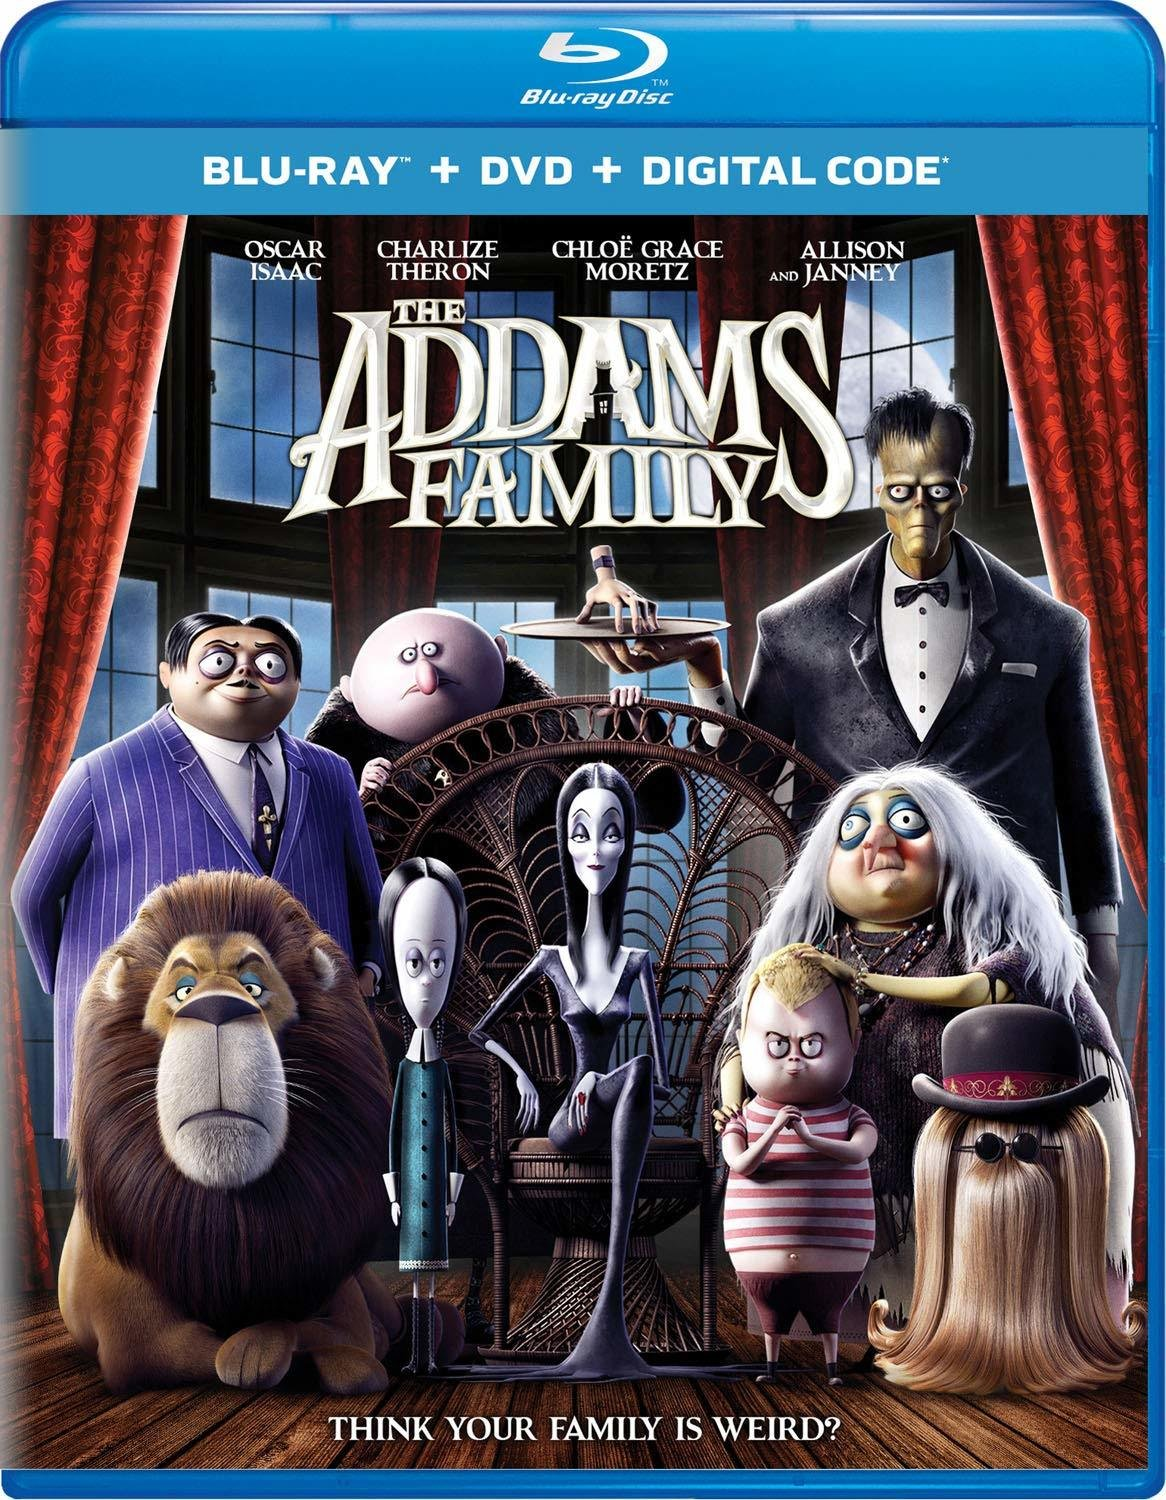 The Addams Family (2019) poster image